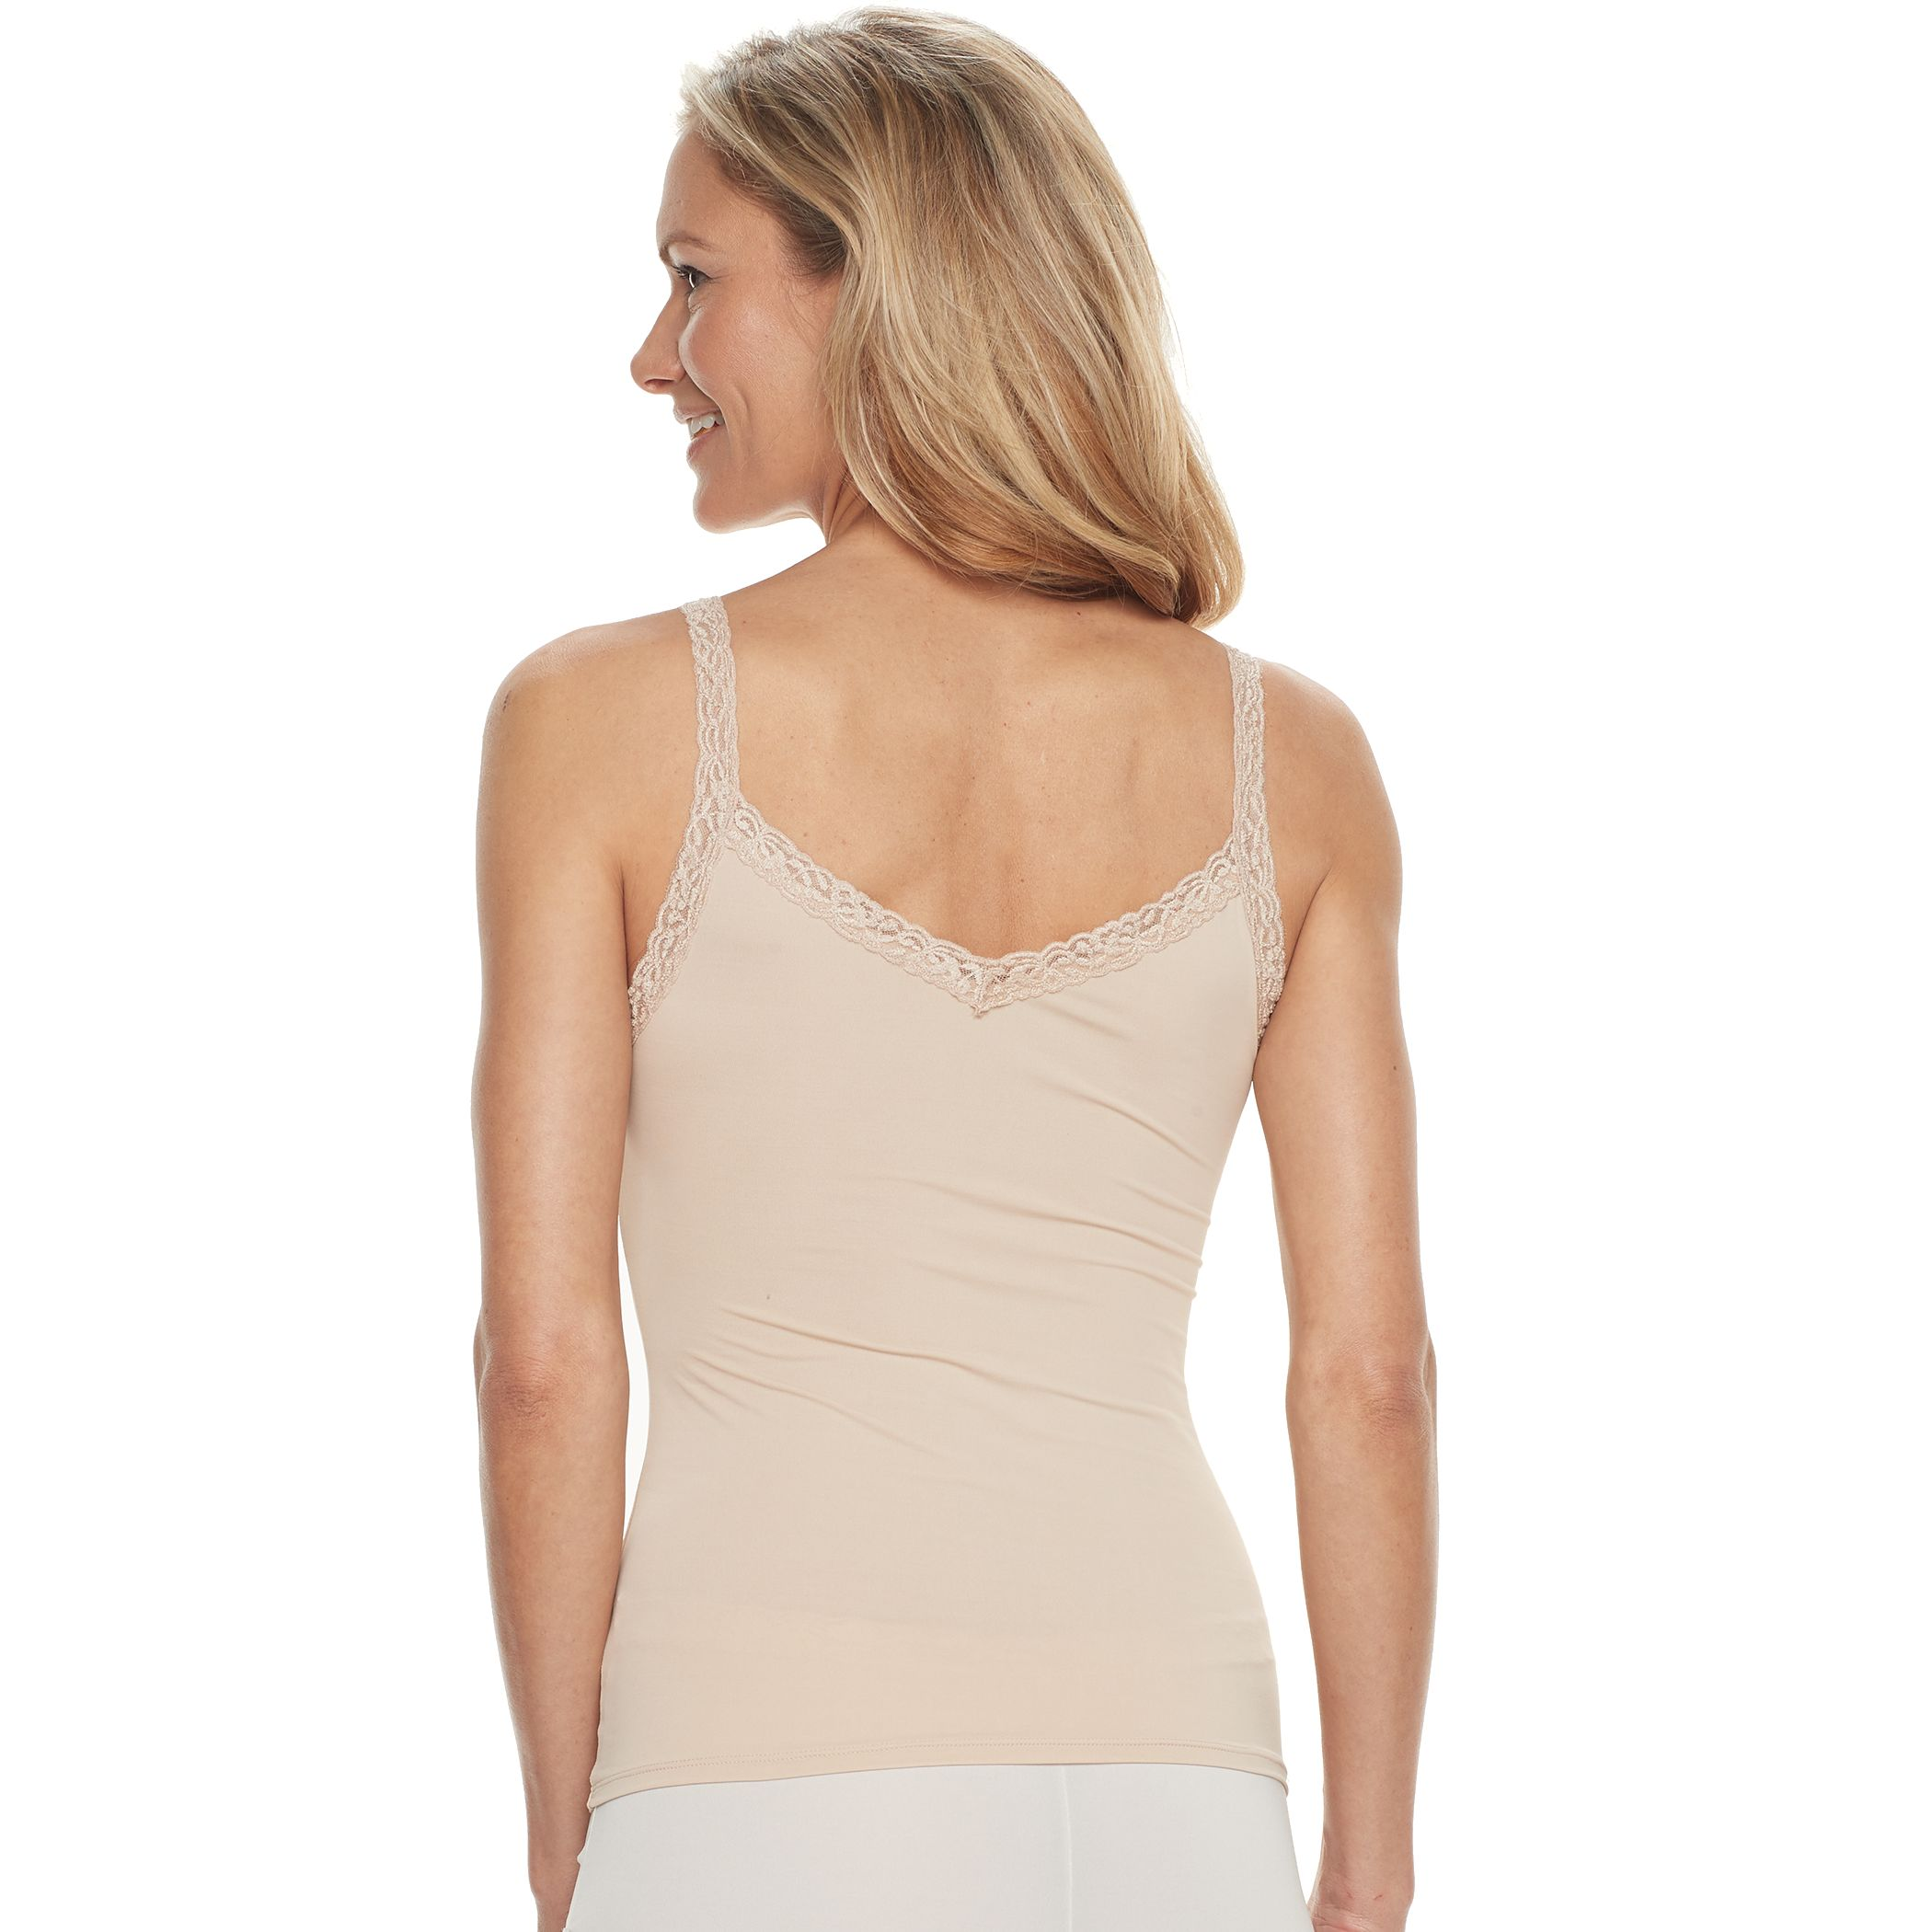 85083aa9360d6 Womens White V-Neck Camisoles Clothing